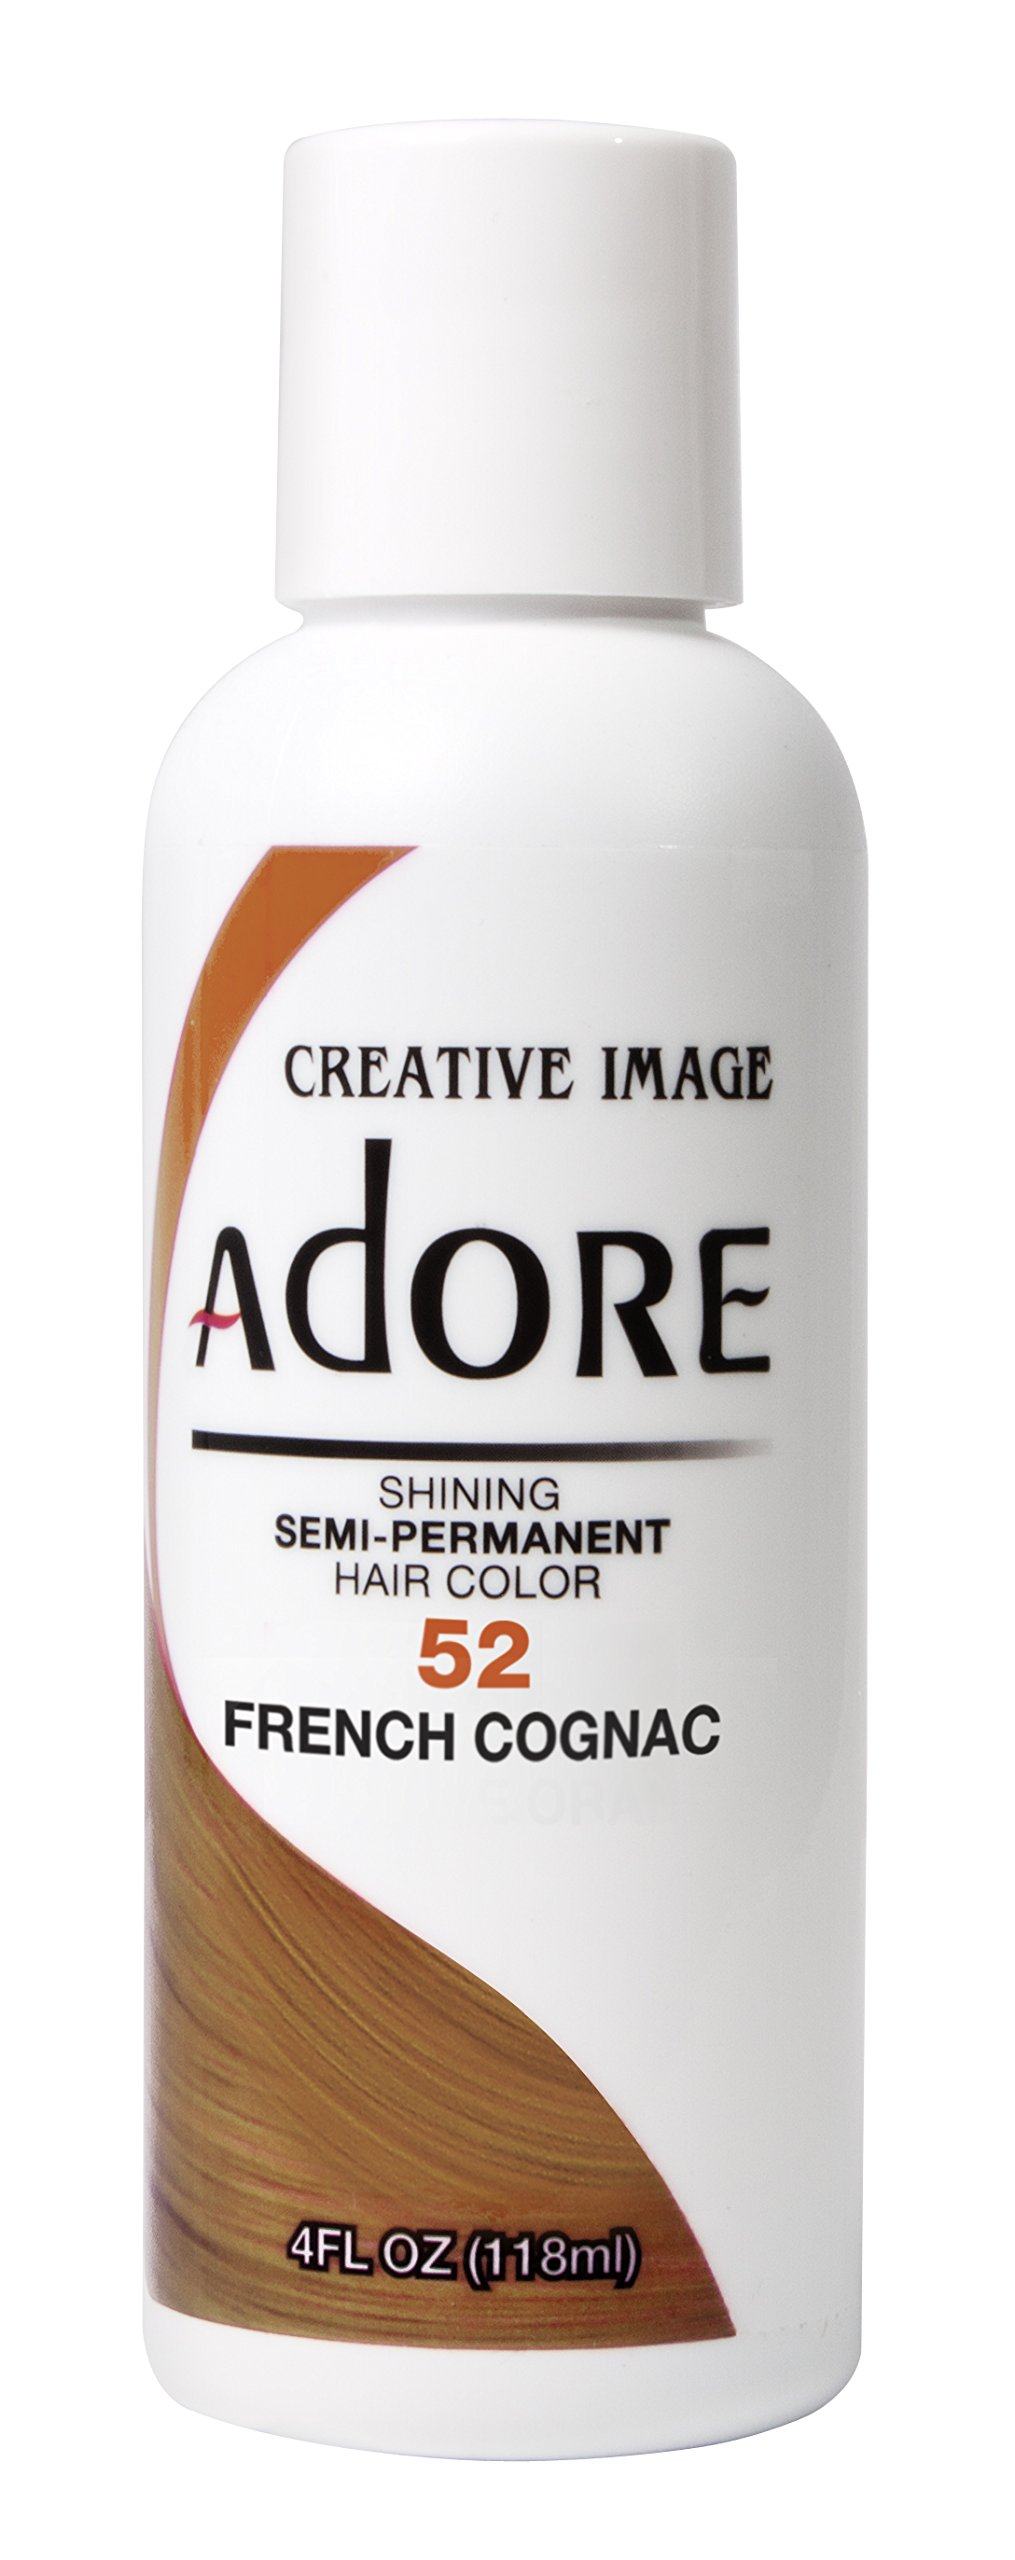 Adore Shining Semi Permanent Hair Colour, 52 French Cognac by Adore